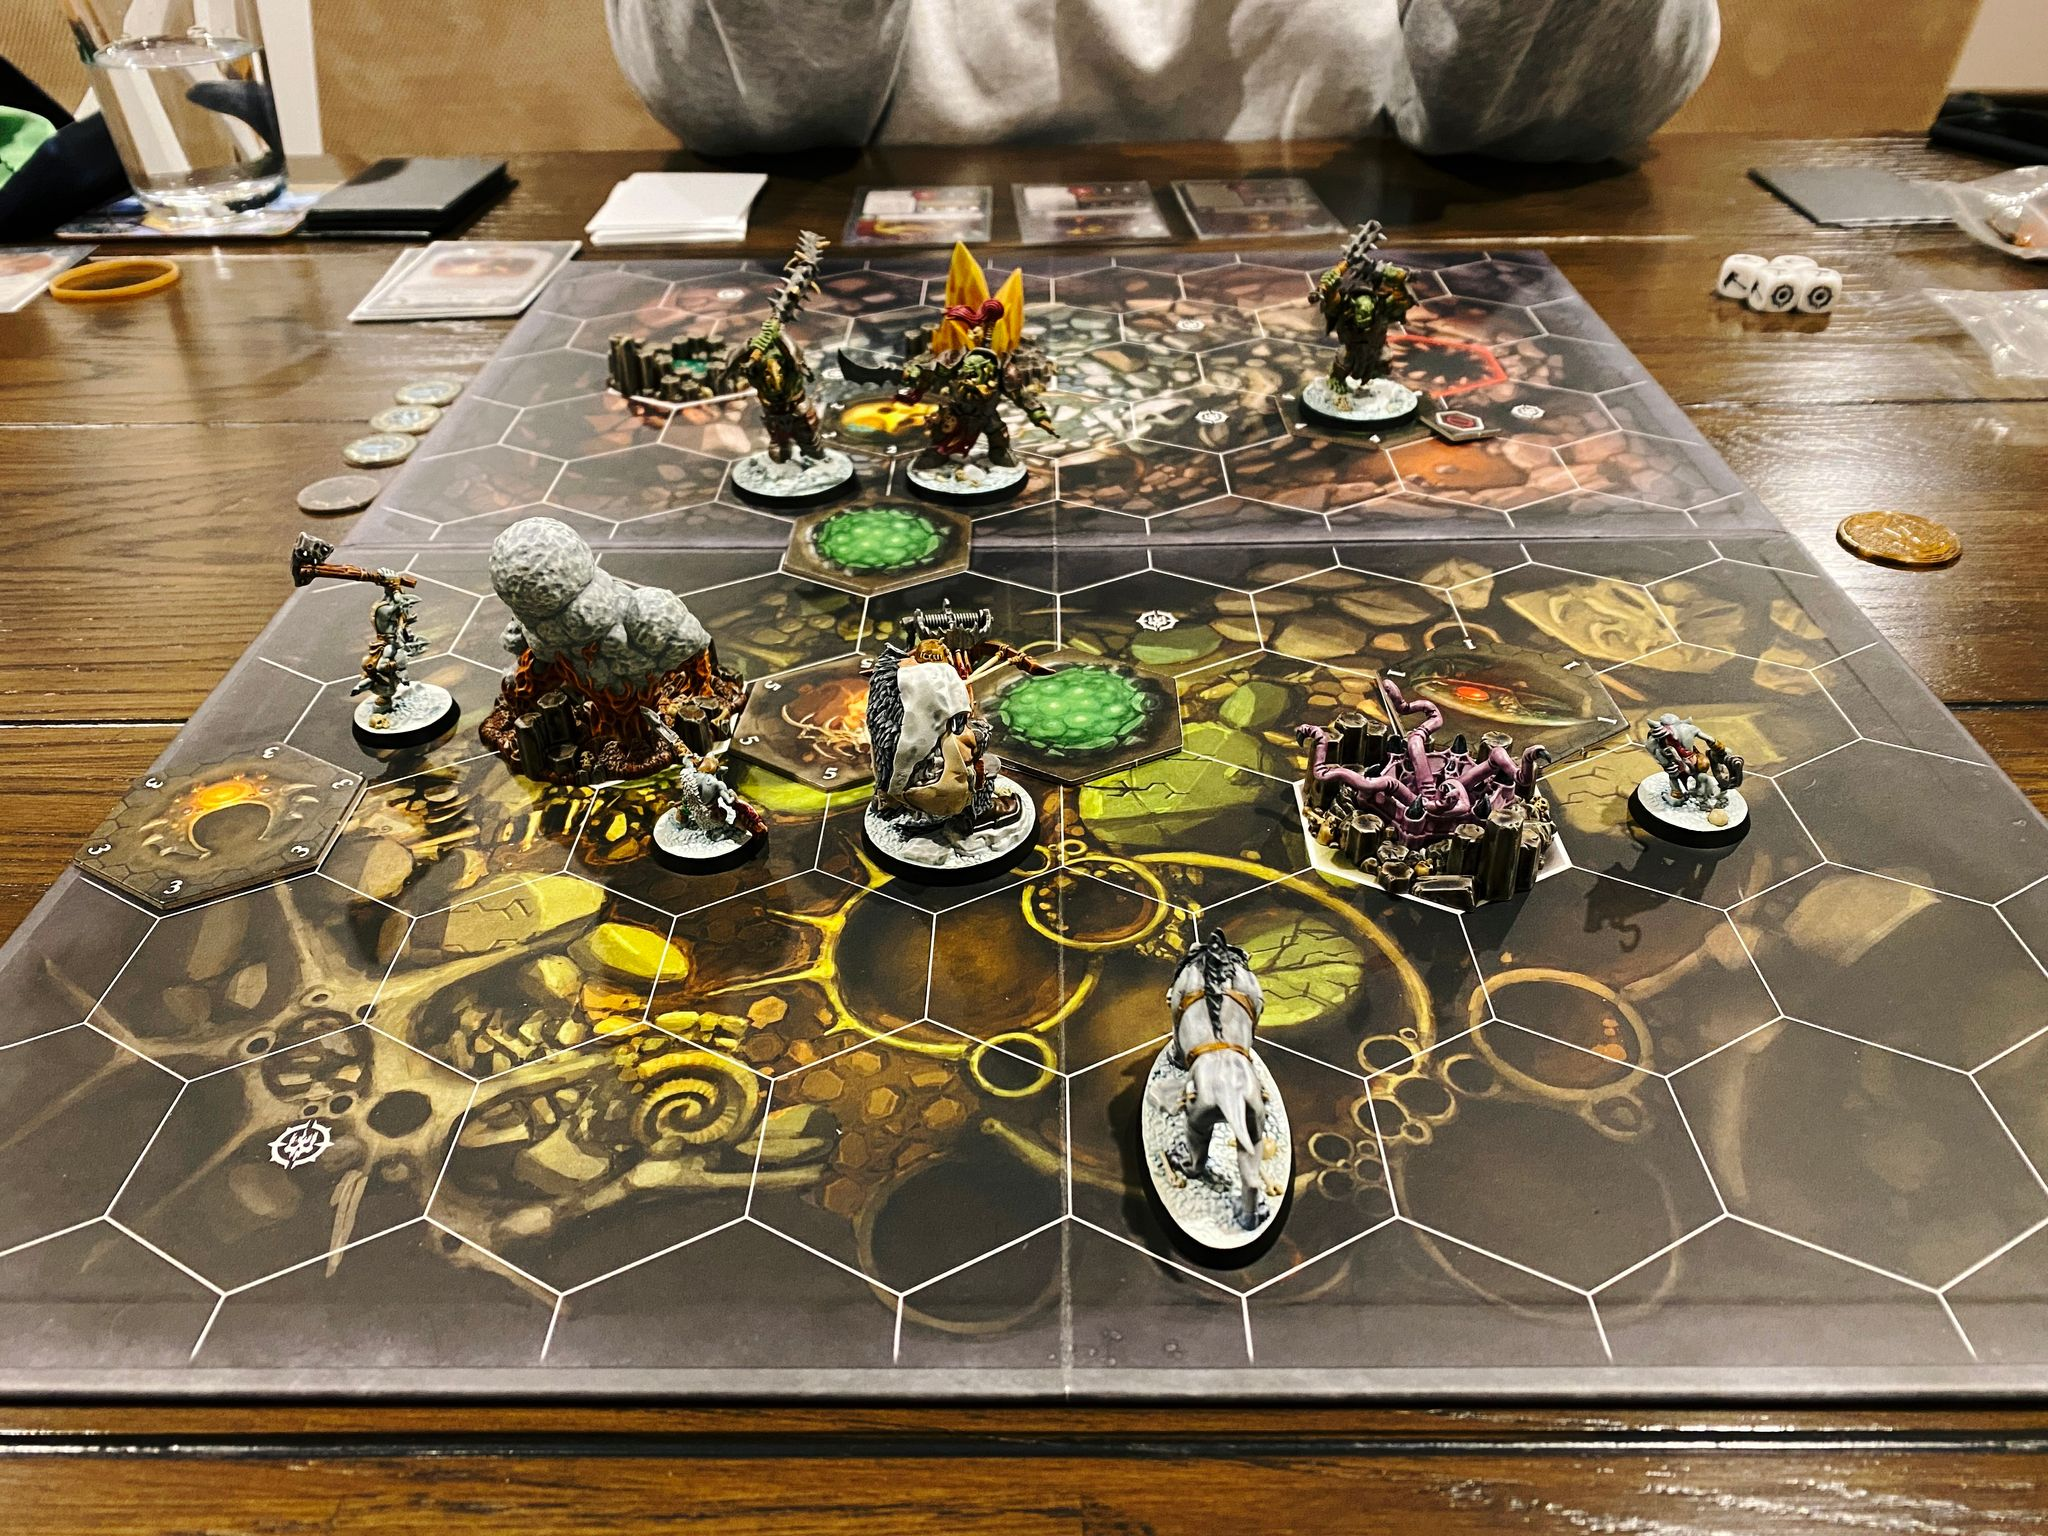 A photo of a Warhammer Underworlds board, with tiled hexes on it. Hrothgorn's Mantrappers are at the front, consisting of a large ogre with a huge crossbow and wearing lots of animal skins, a sabretooth tiger, and three gnoblars (goblins). Facing them are Morgok's Krushas, three heavily armed and armoured orruks (orks).